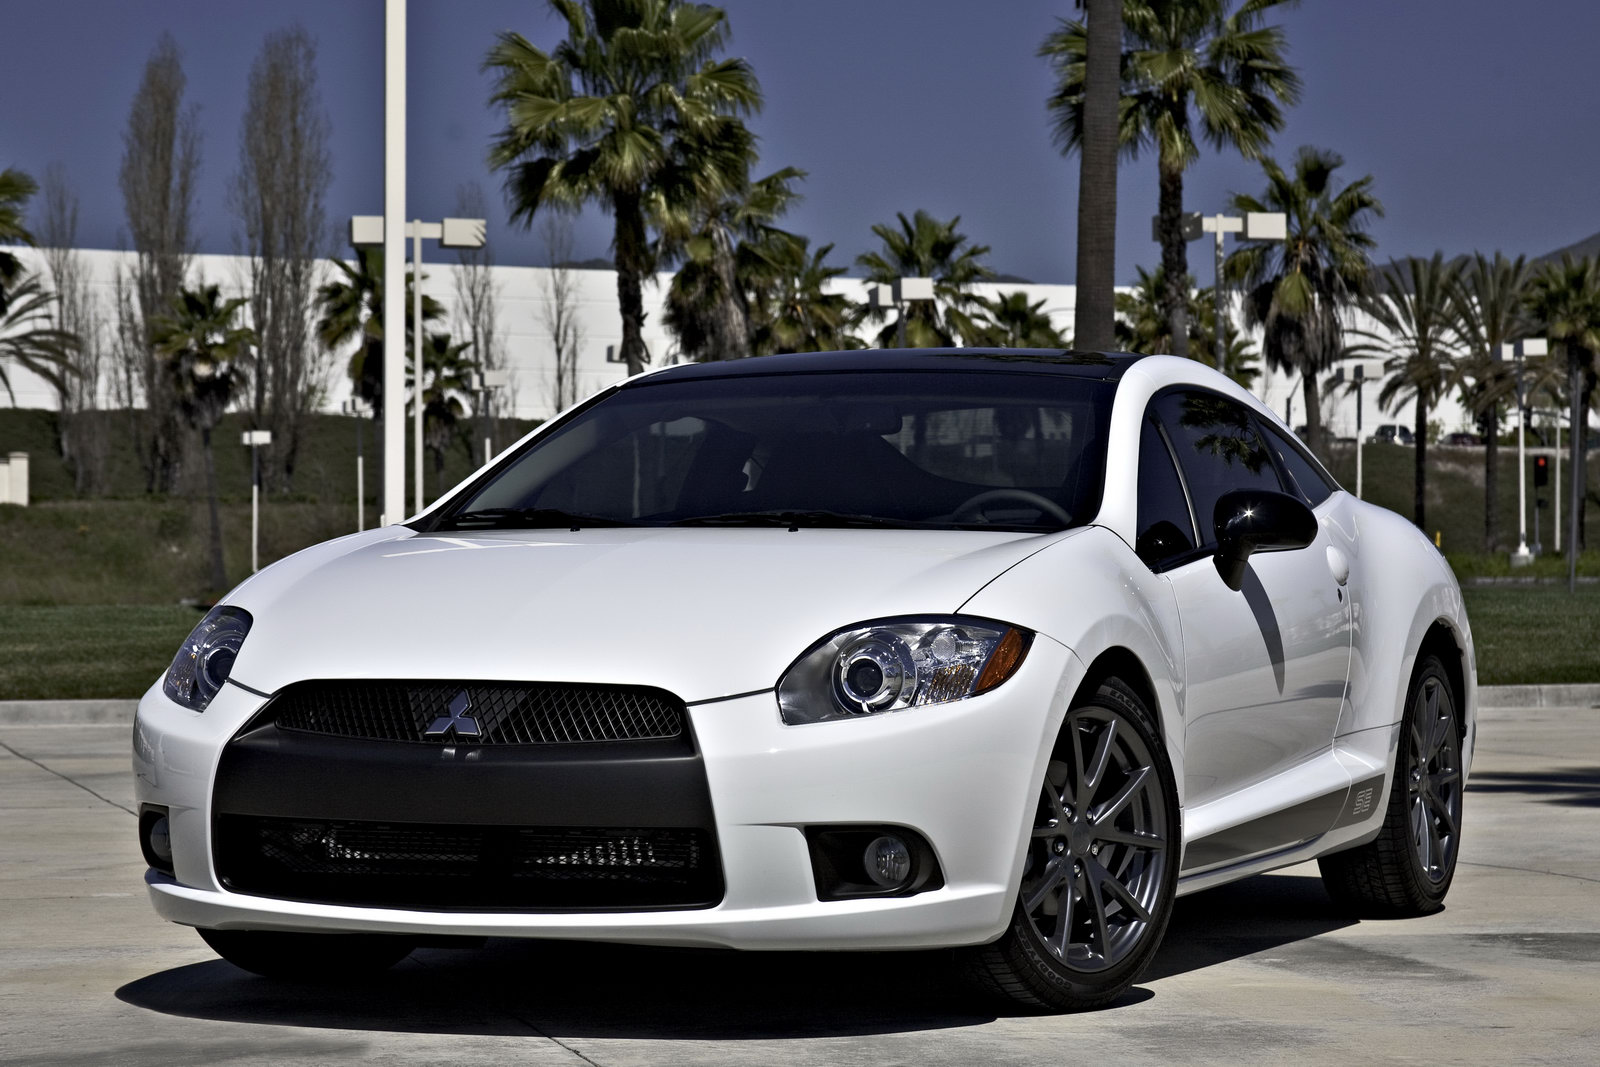 2011 Mitsubishi Eclipse SE 2012 SE Special Edition Series  A Short Car Review